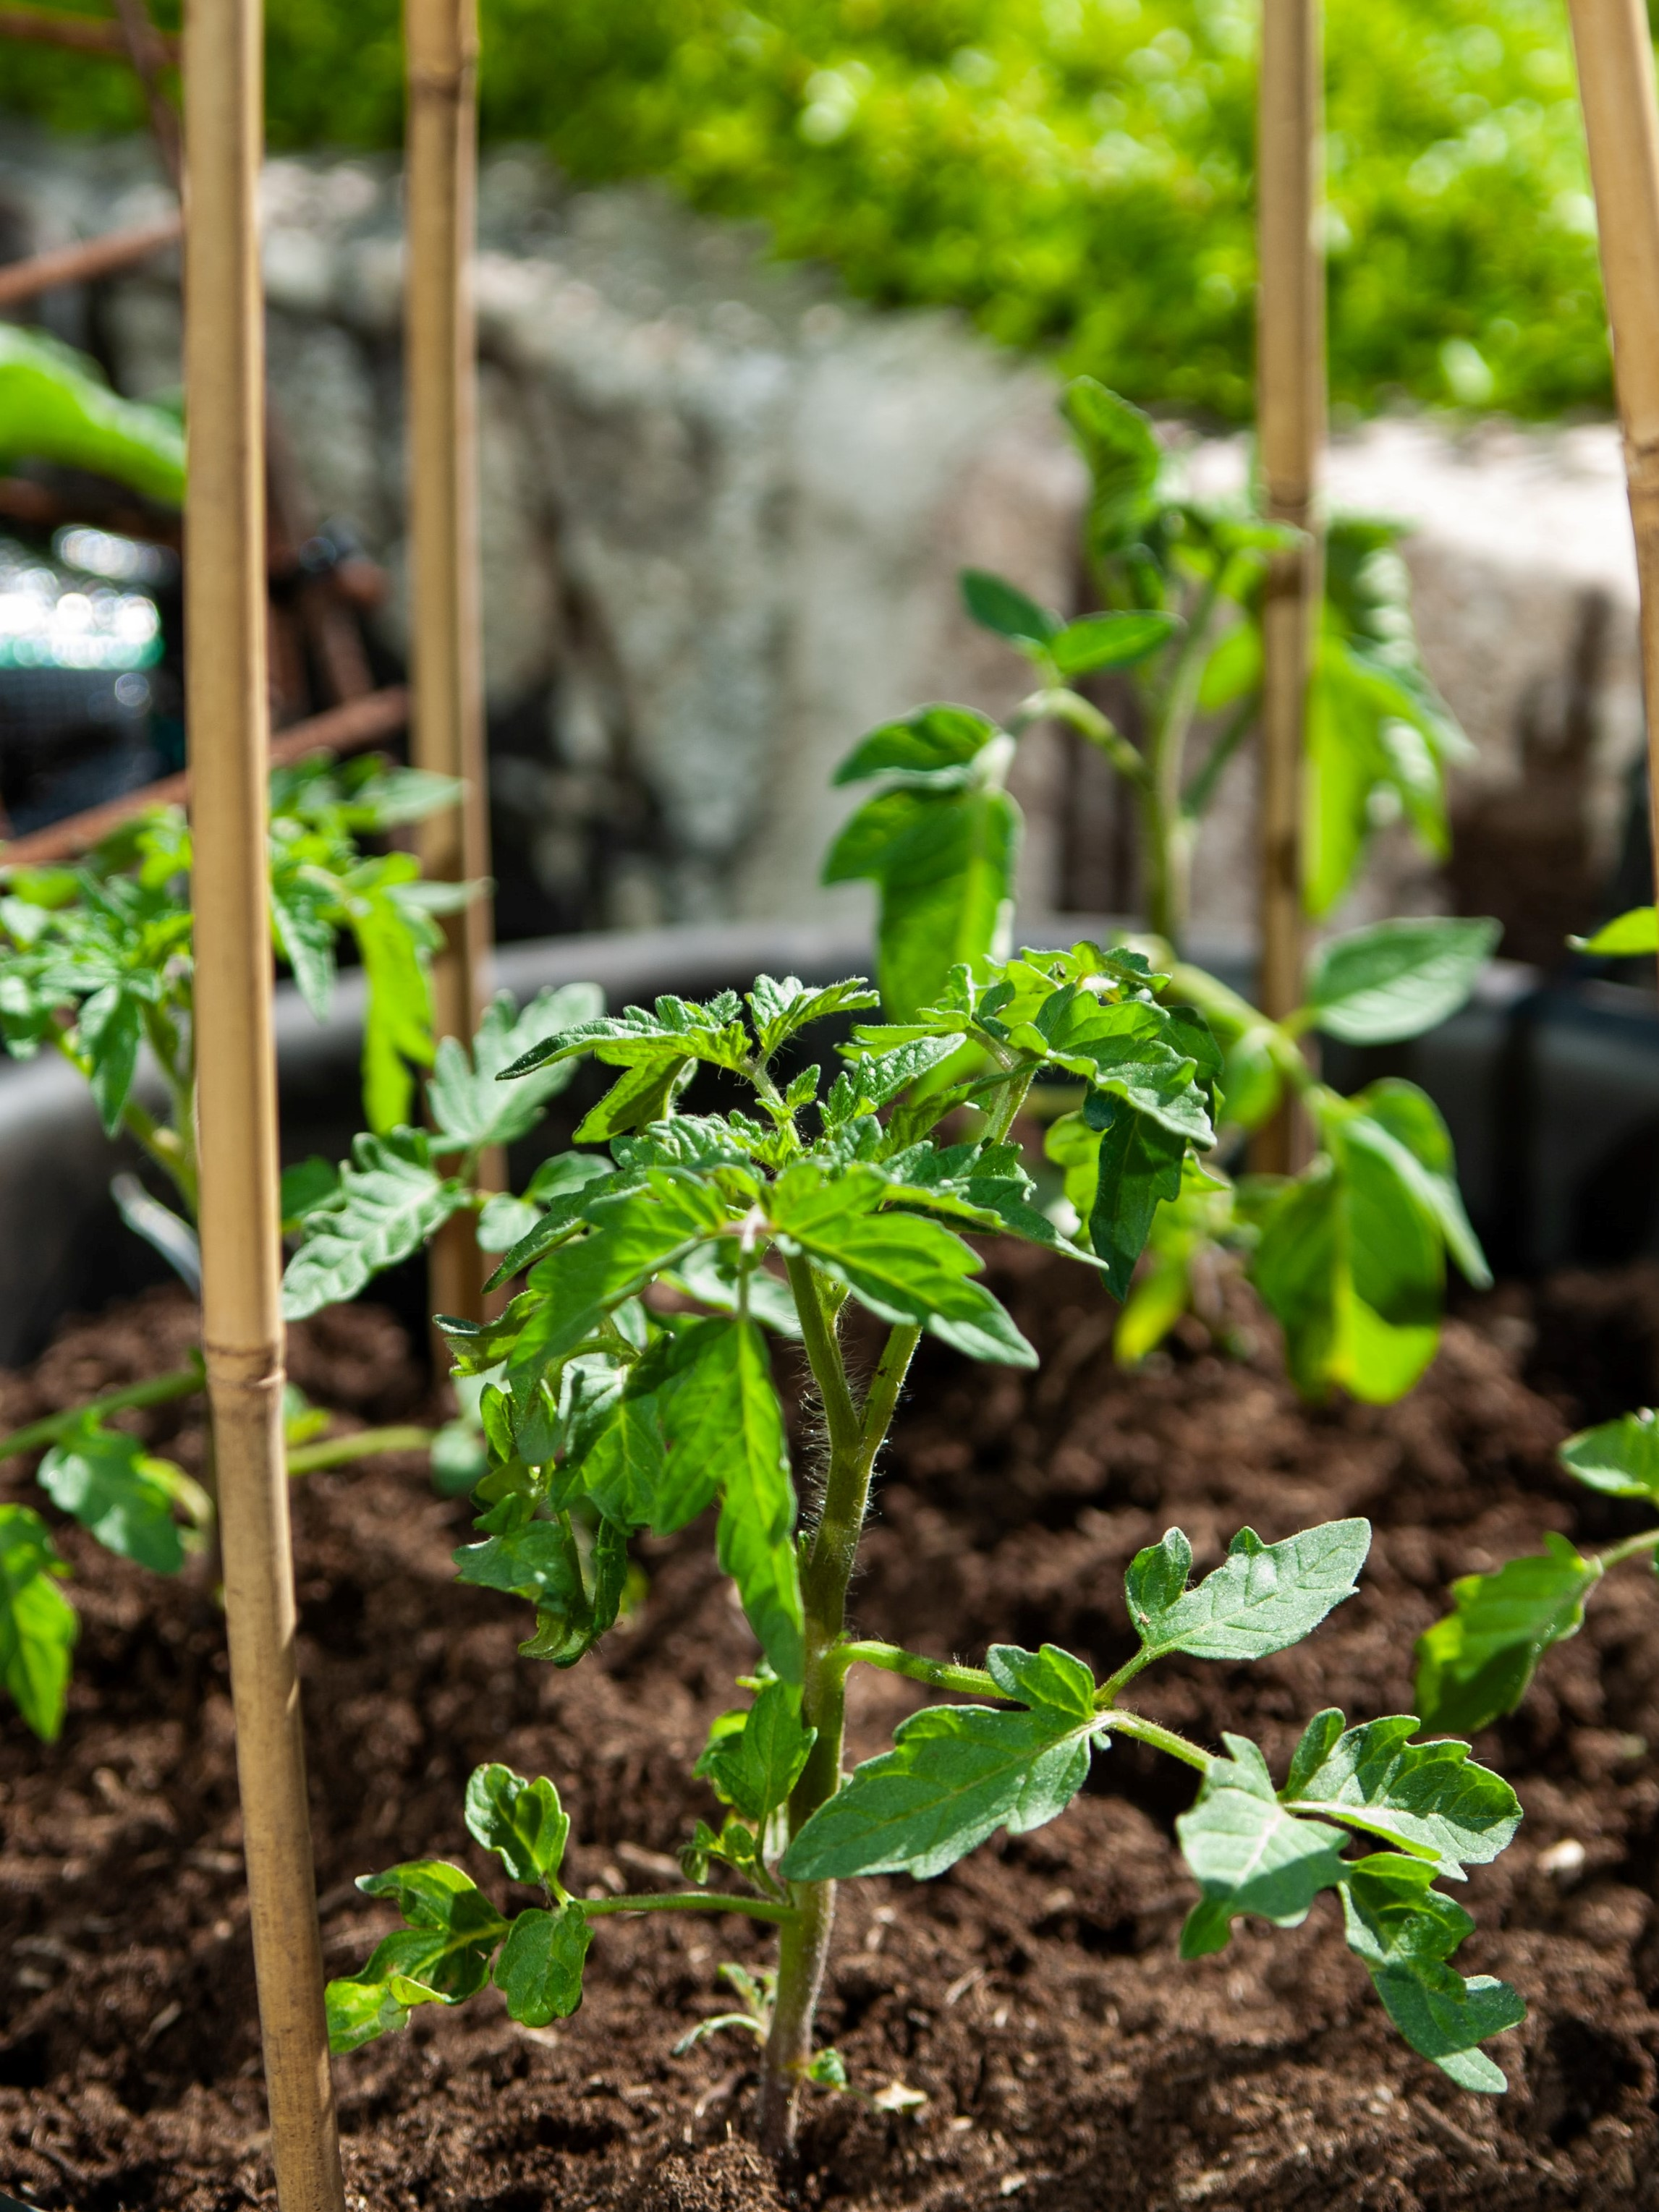 tomato plant in dirt with support stick